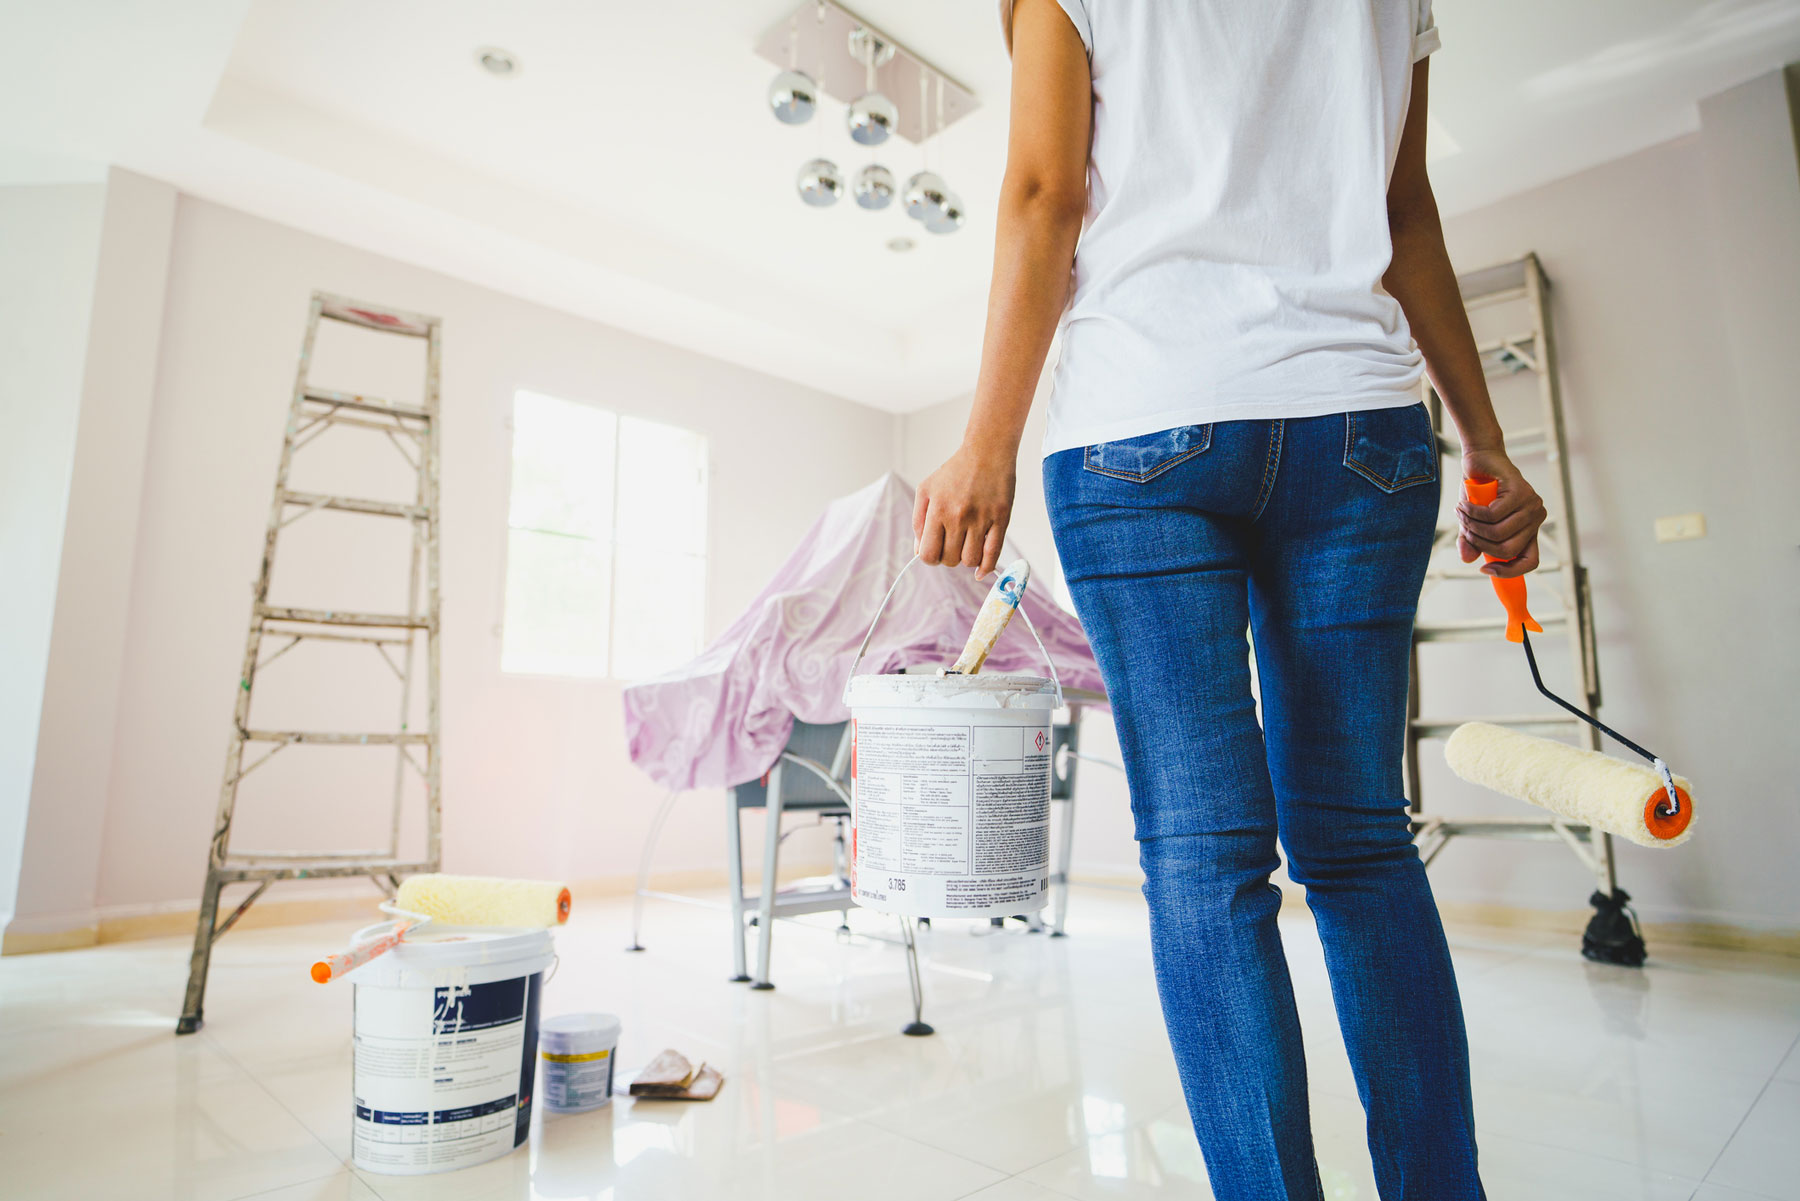 2019 home decor trends - Woman getting ready to paint room